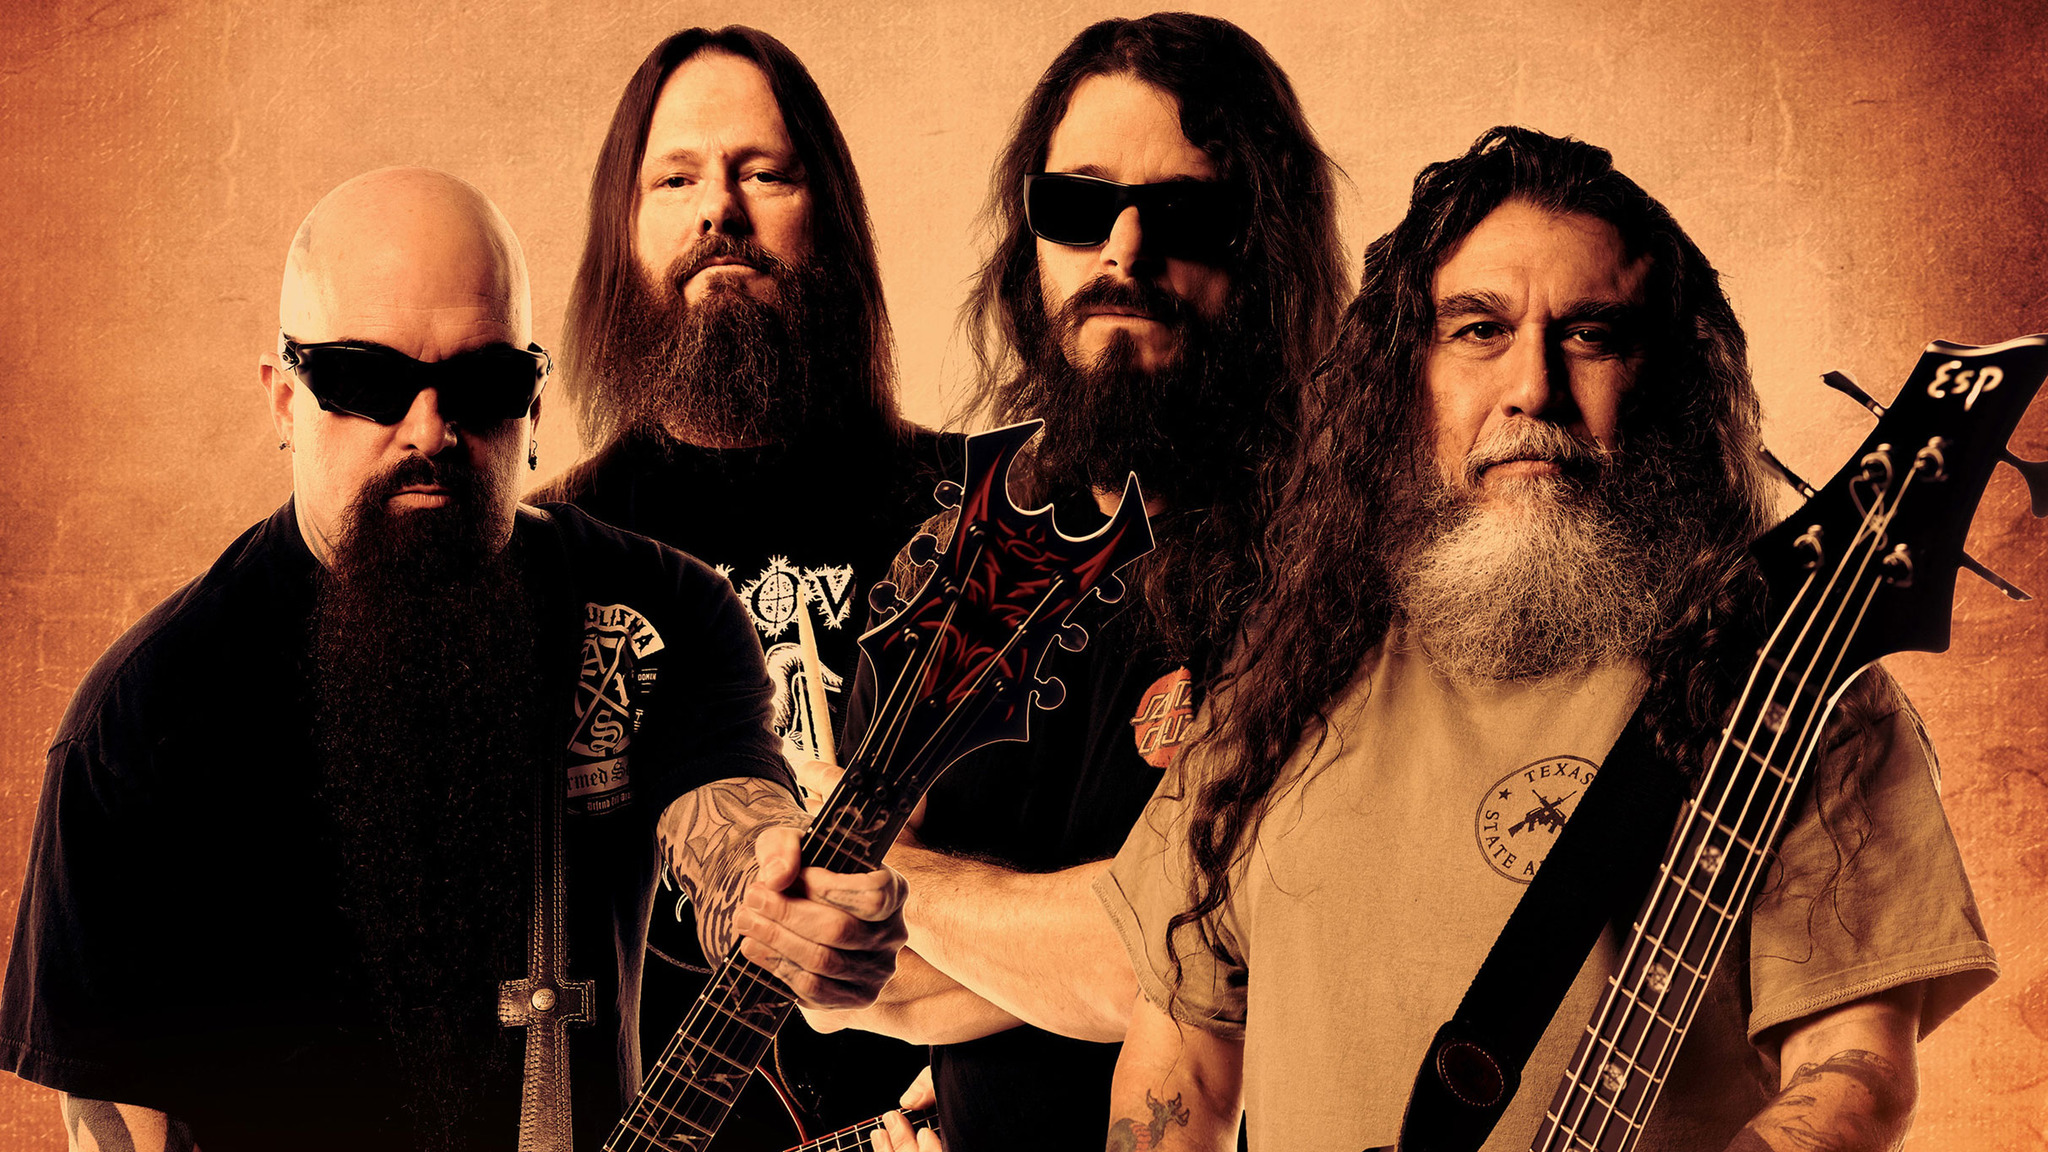 Slayer with Lamb of God and Behemoth